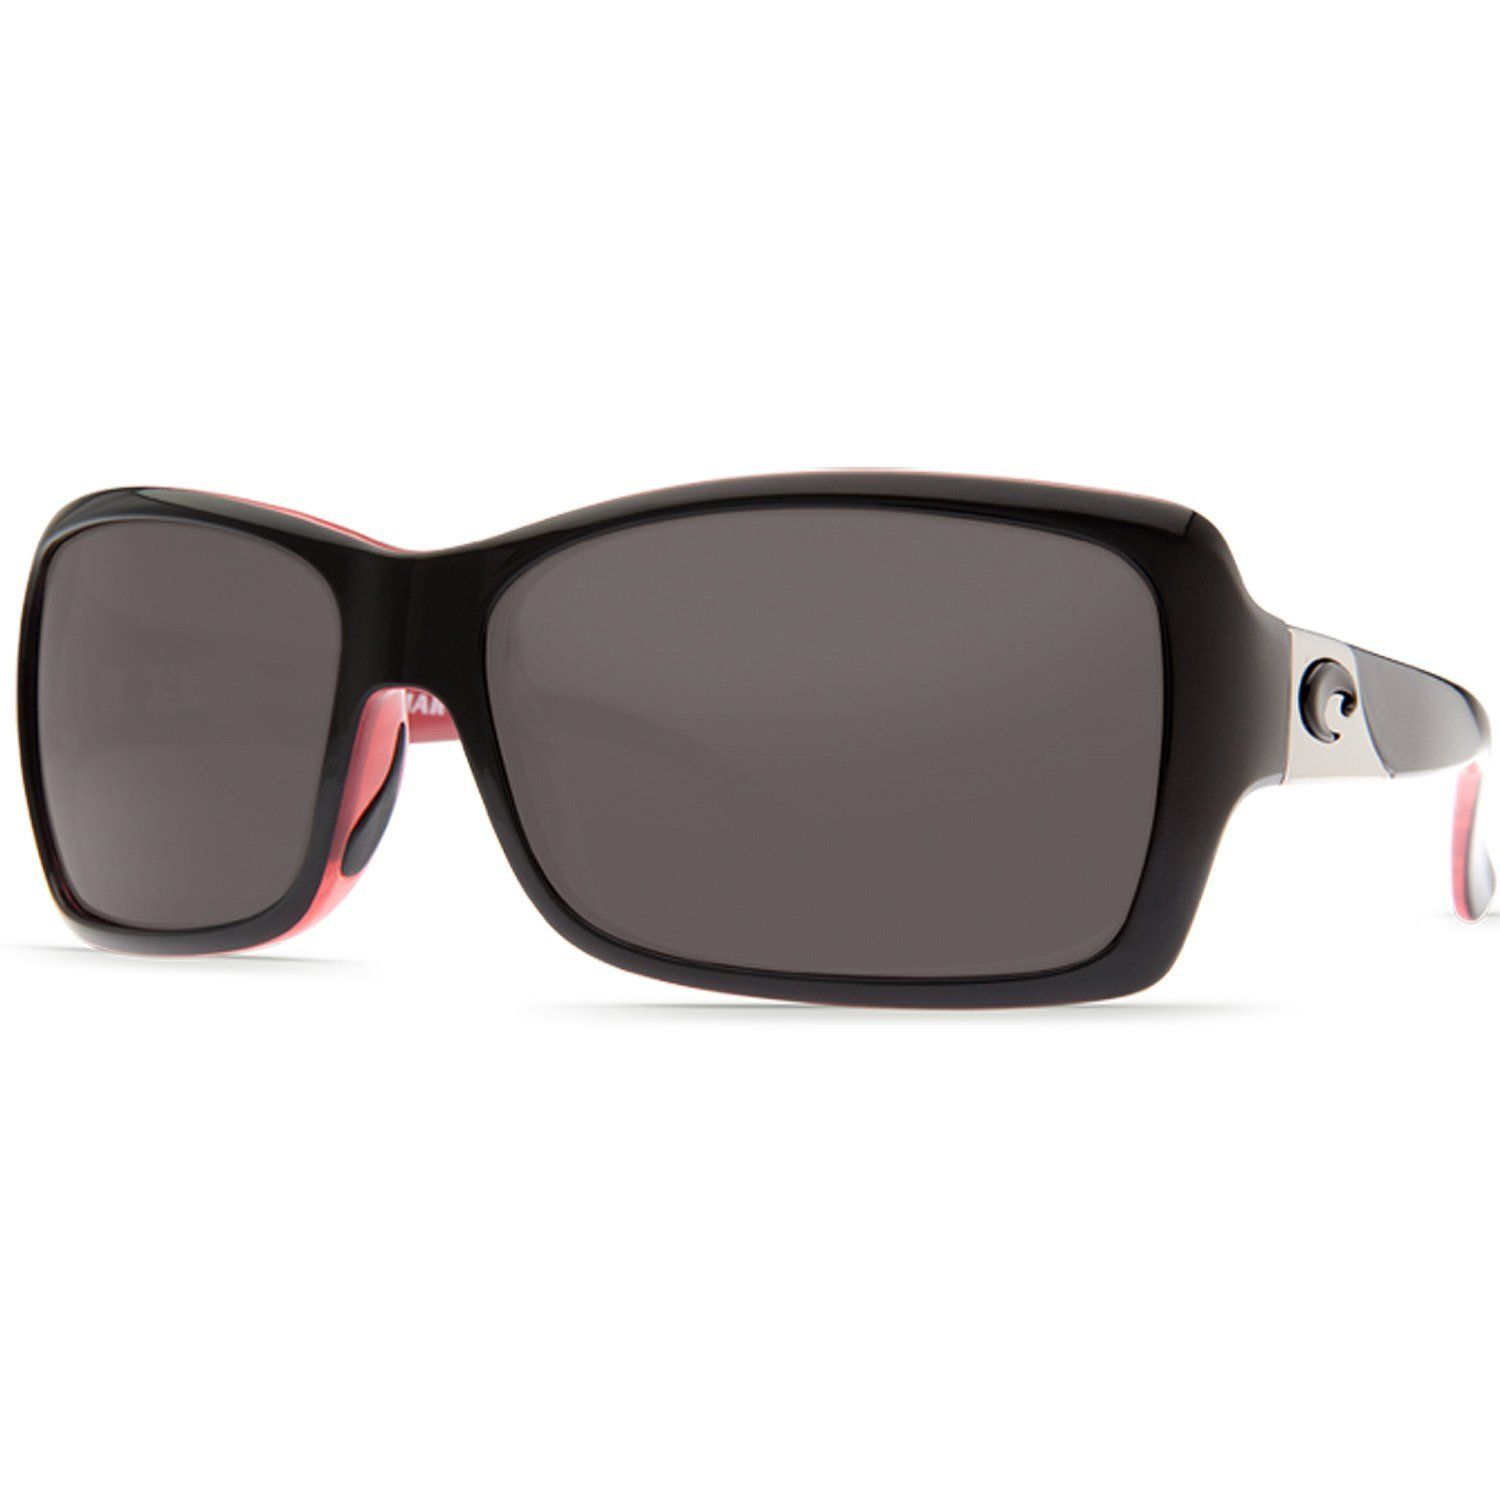 48f3342c0f Costa Del Mar Islamorada Polarized Sunglasses - Costa 580 Polycarbonate Lens  - Womens Black-Coral Amber